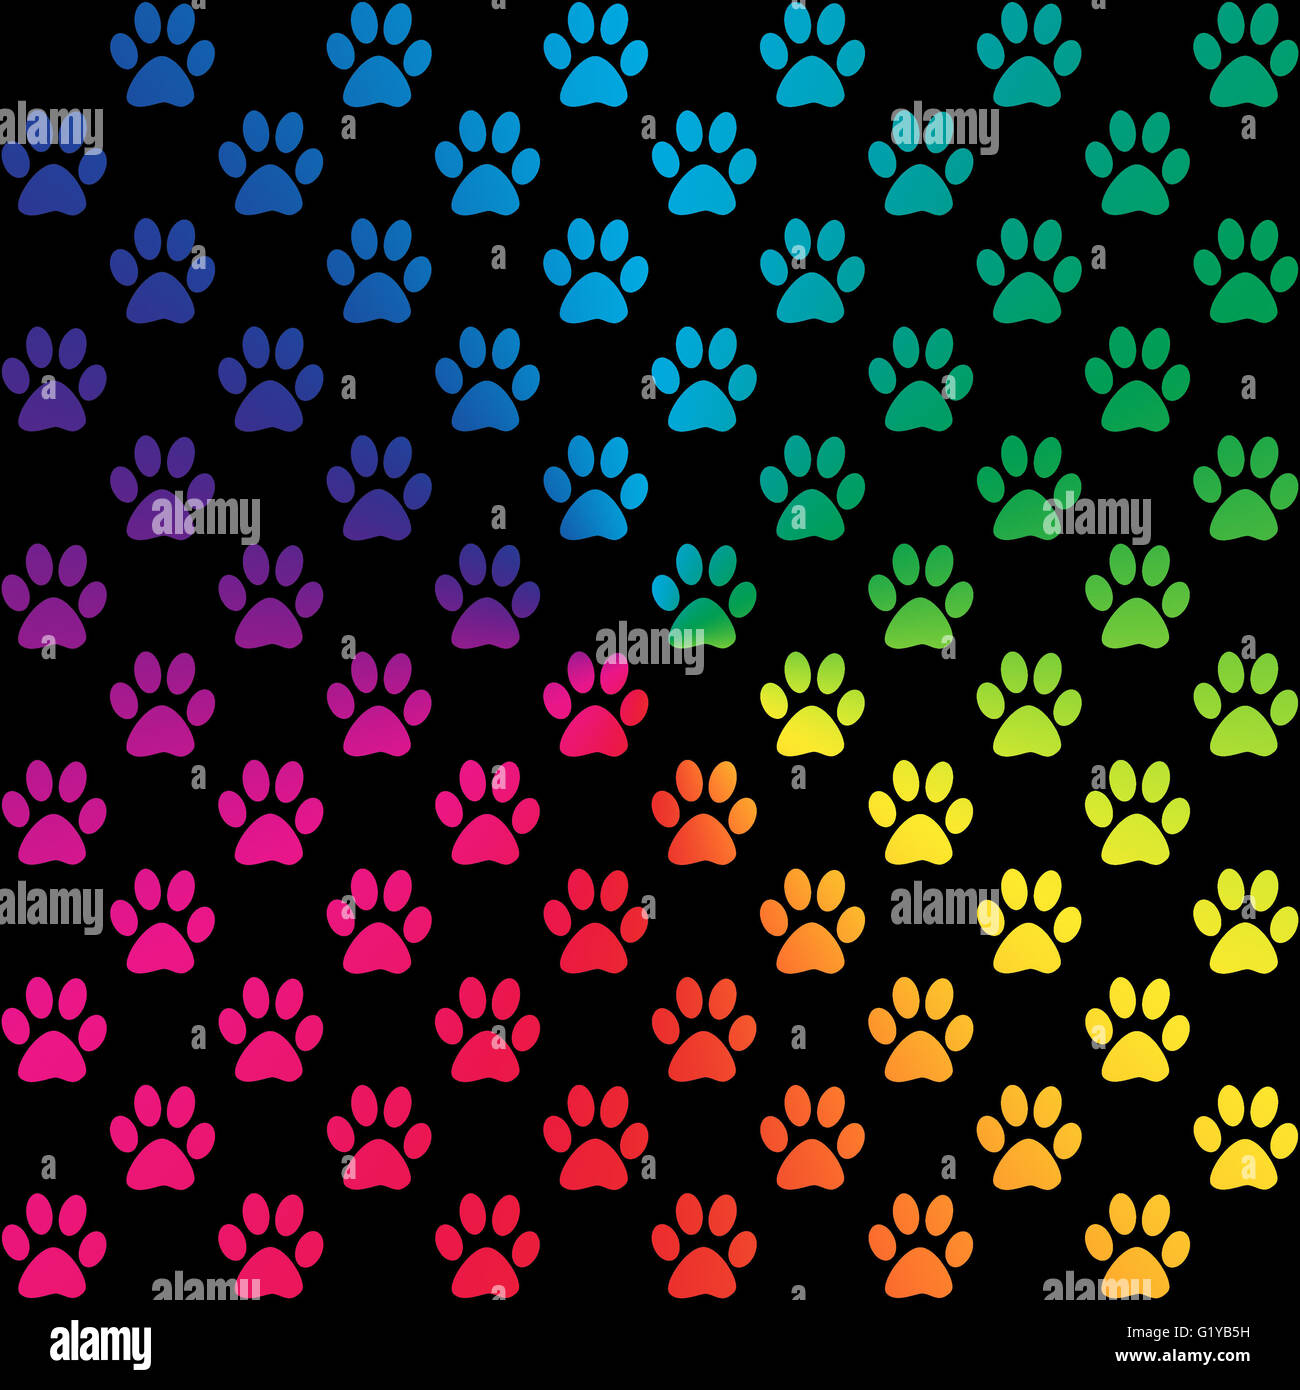 Paw prints in gradient rainbow colors, on black background - Stock Image